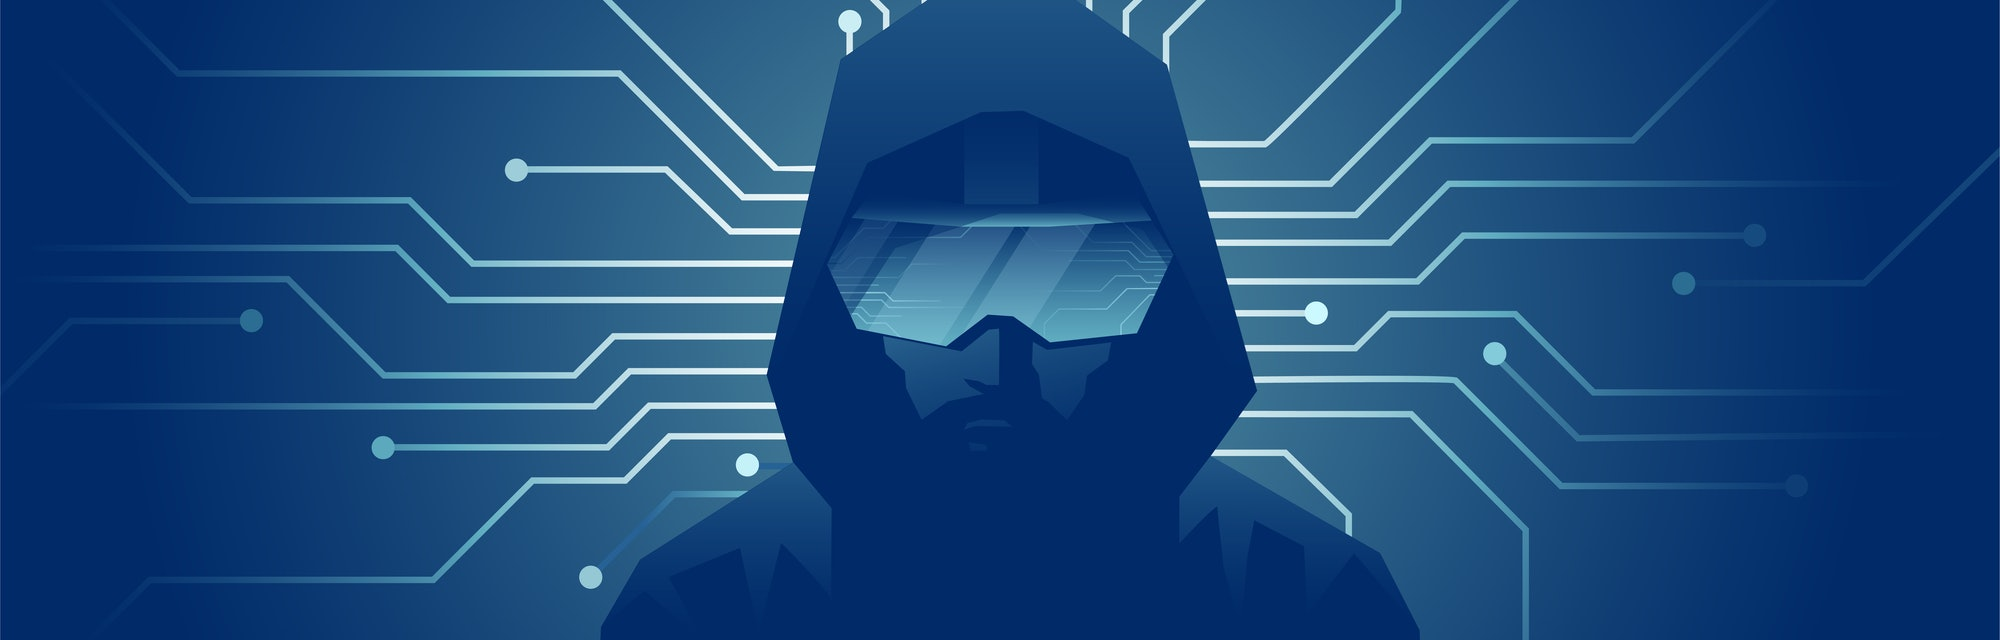 Virtual reality modern technology concept. Vector of a man in VR headset glasses on dark background with lines of internet network connections.